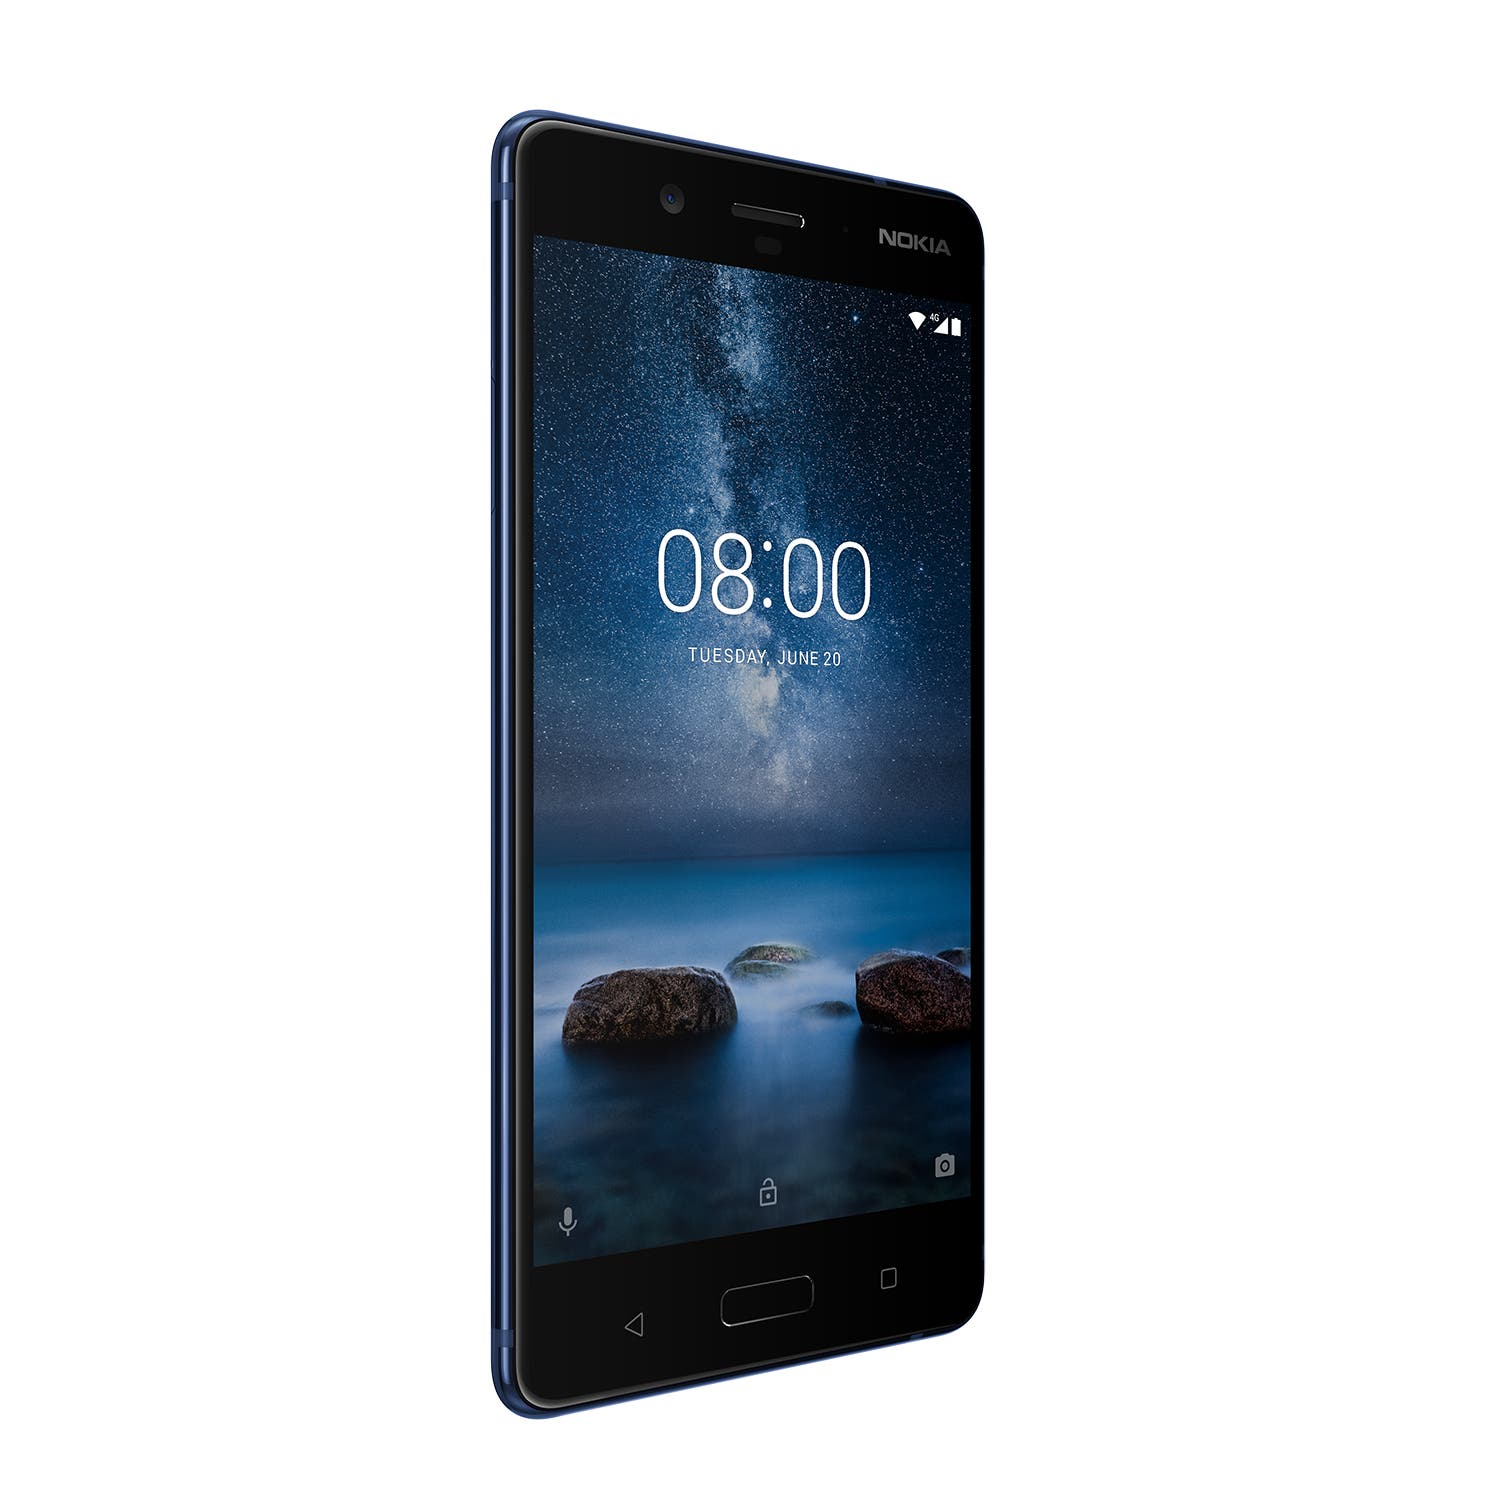 Nokia 8 sagt iPhone den Kampf an